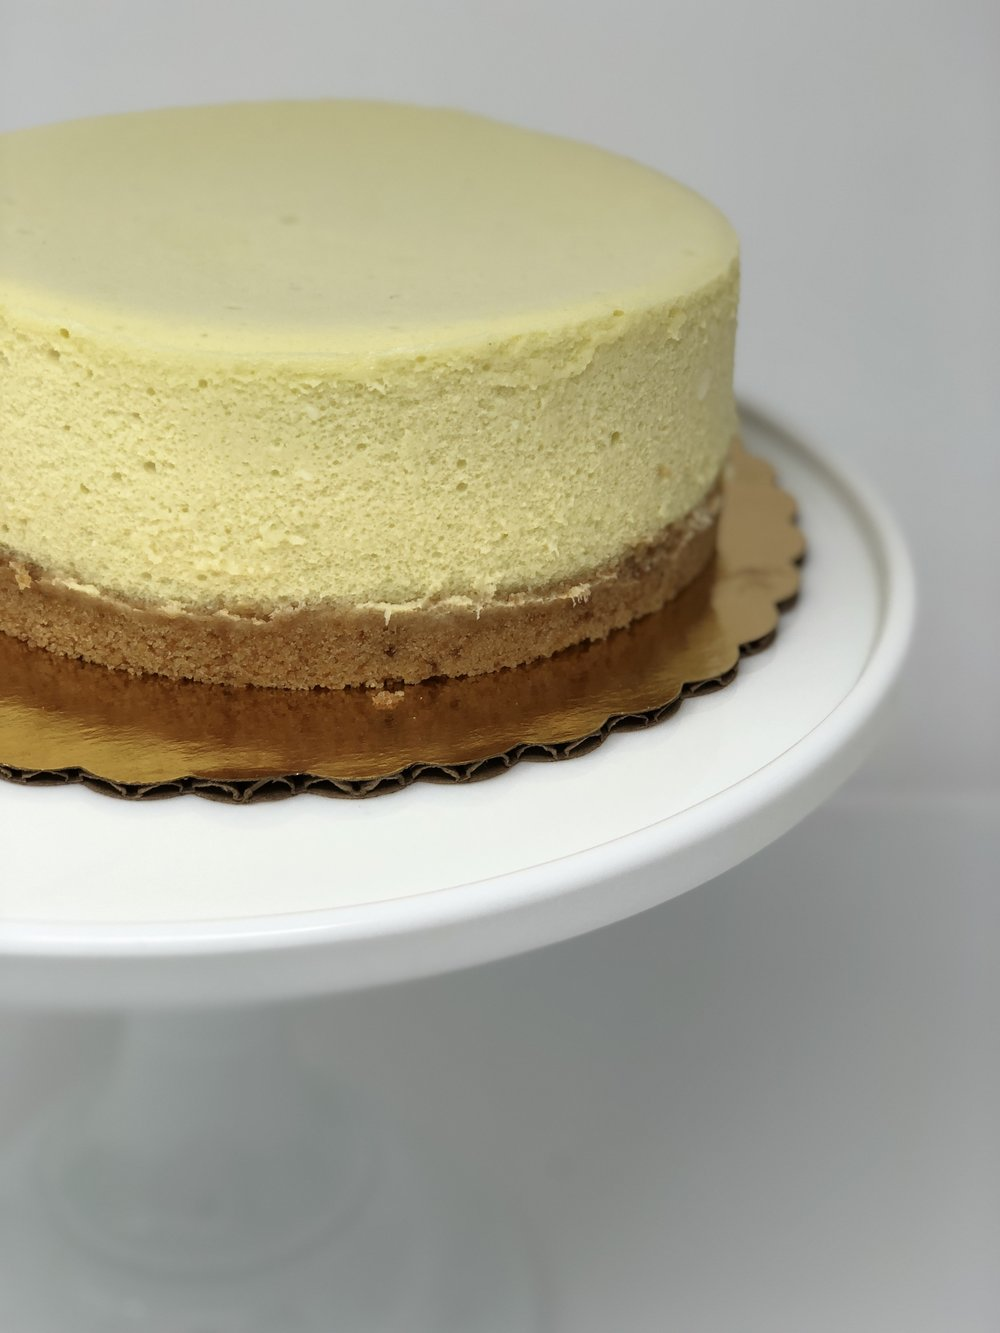 COCONUT PANDAN CHEESECAKE - Deliciously delicate cheesecake with a subtle coconut and pandan flavor. We extract the sweet and incredible flavor of pandan by grinding fresh pandan leaves with coconut milk. Pandan is a type of plant that grows in tropical areas of Asia and is commonly used in Southeast-Asian countries.